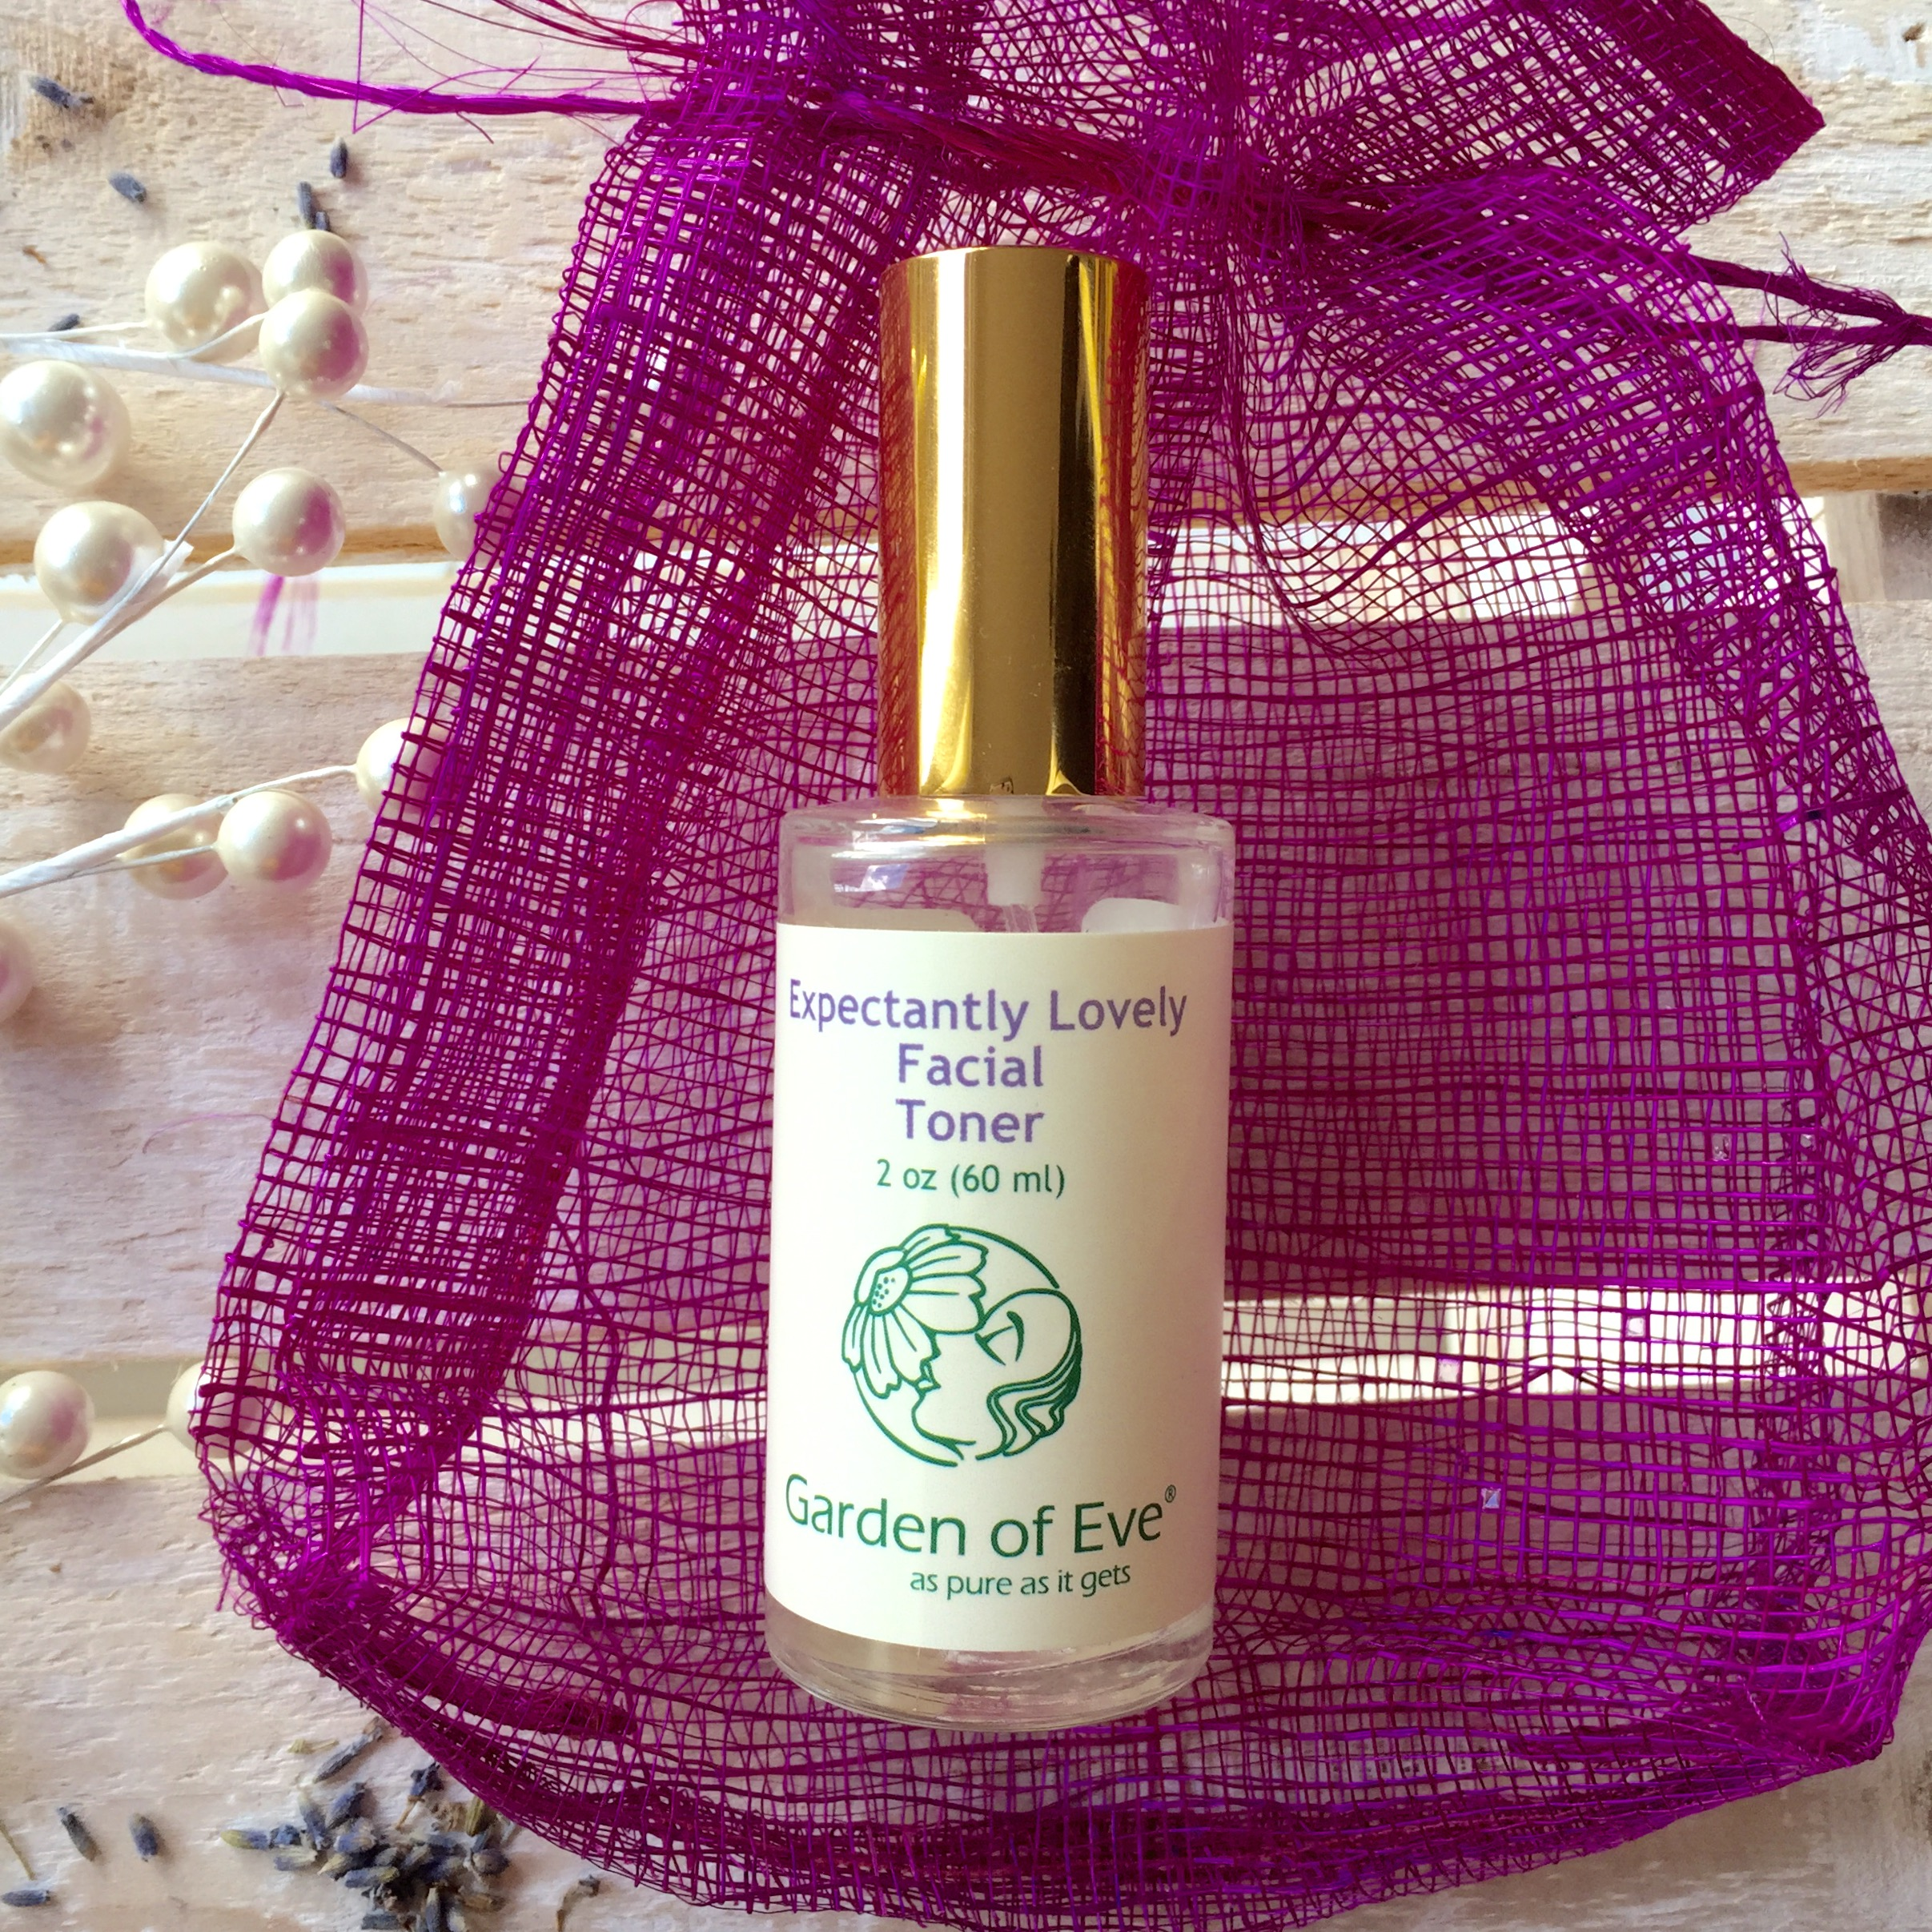 Congratulate, Of eve skin care facial cleansing nectar